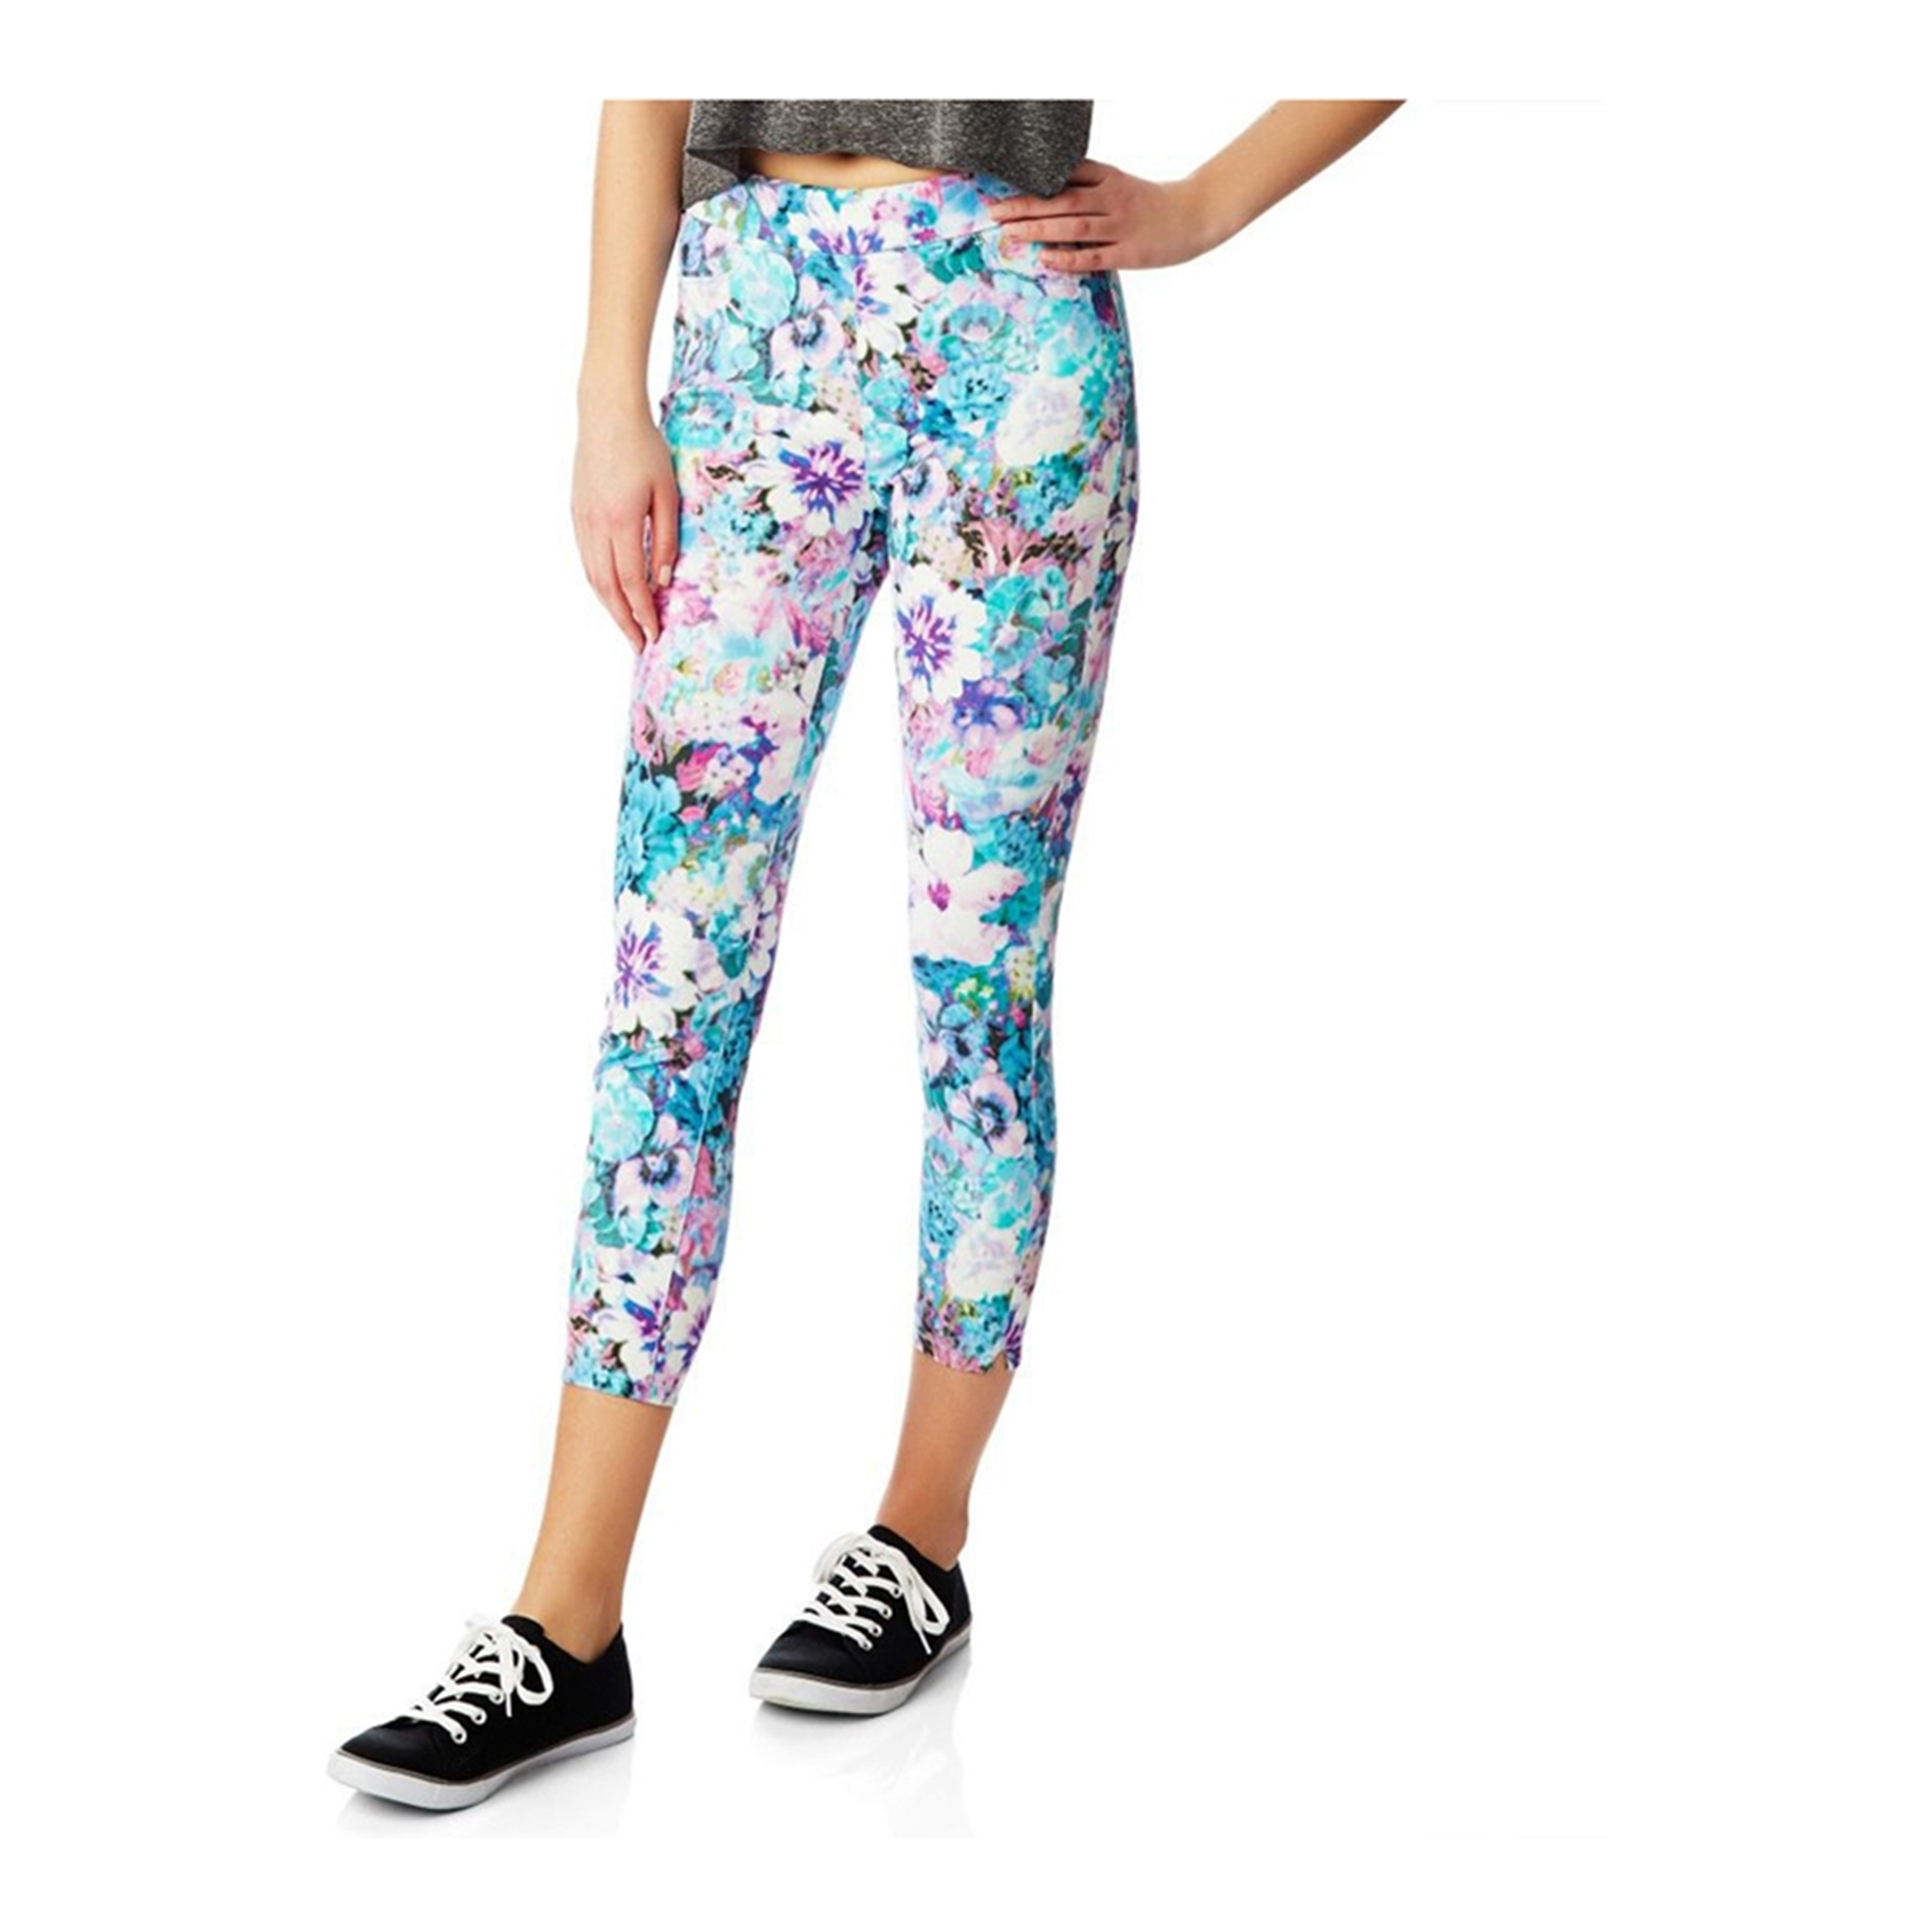 LEGO MW-Jeggings Leggings Bambina